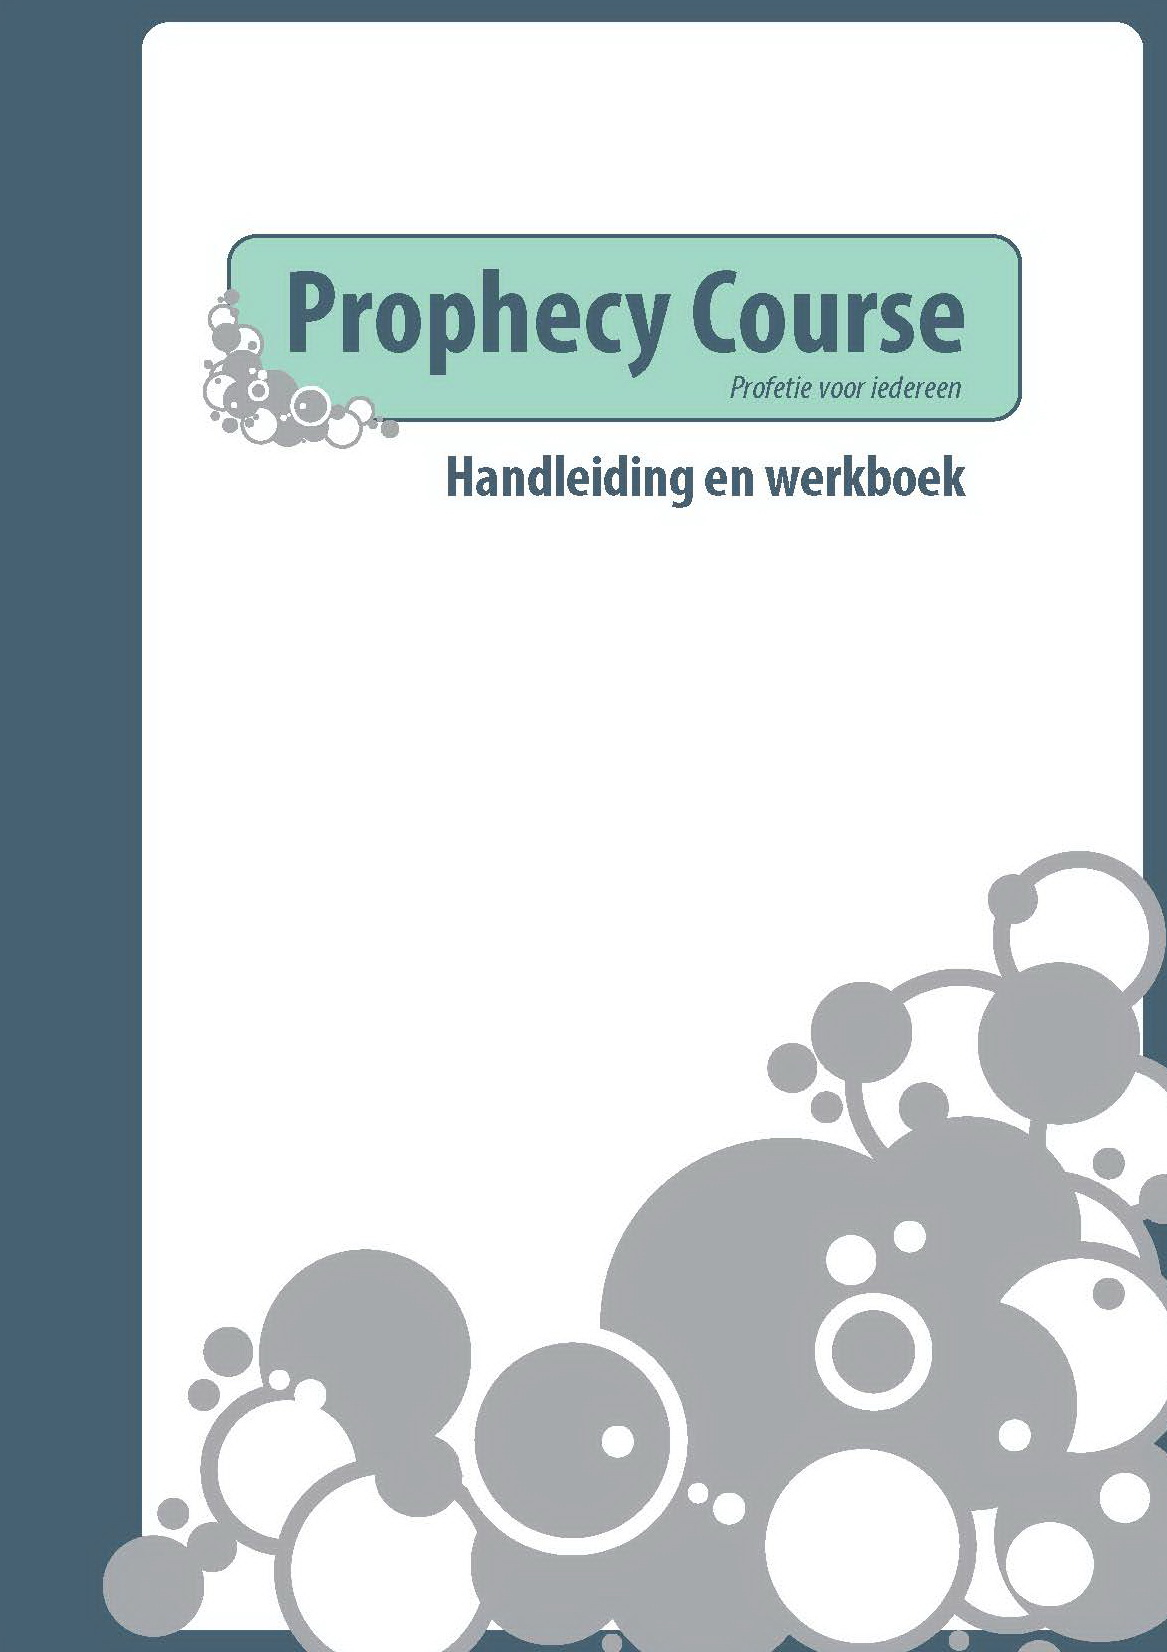 Prophecy Course (leiders)